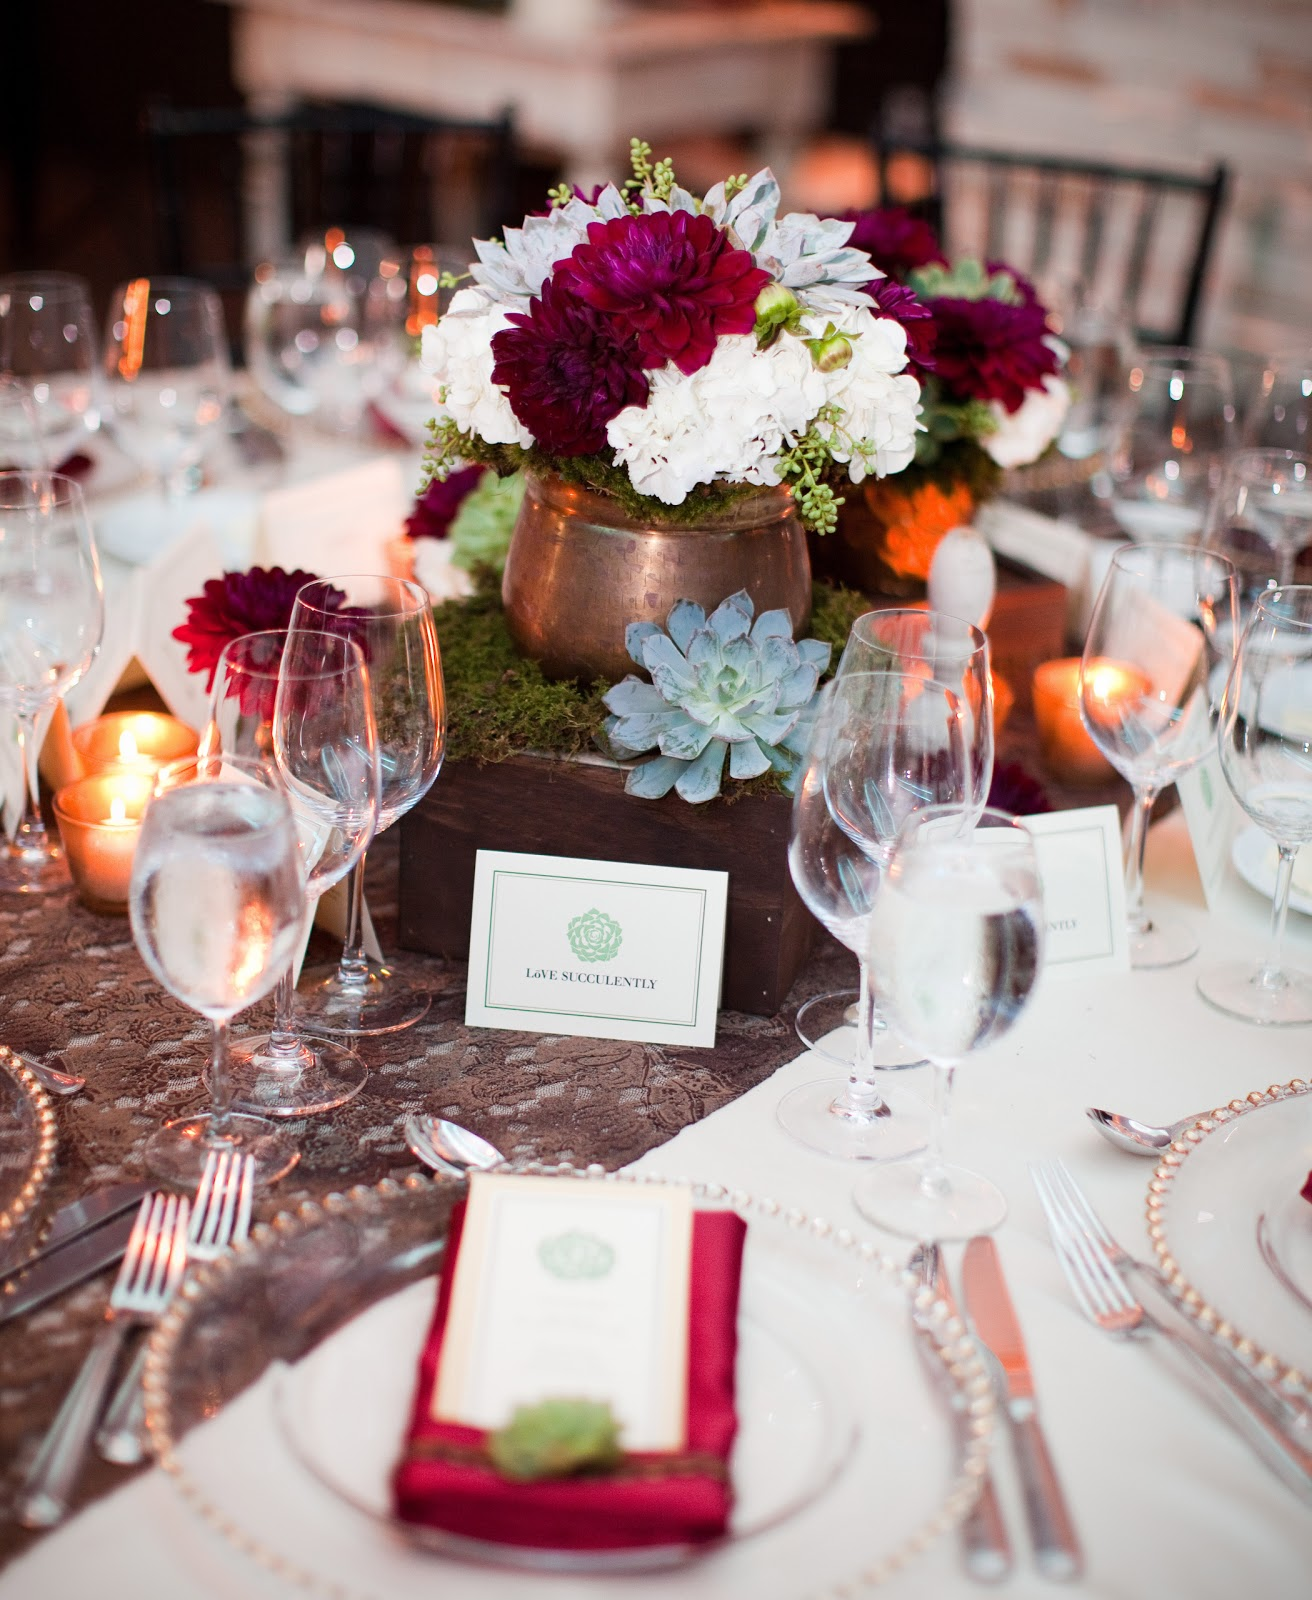 Shakia S Blog Romantic Wedding Centerpieces